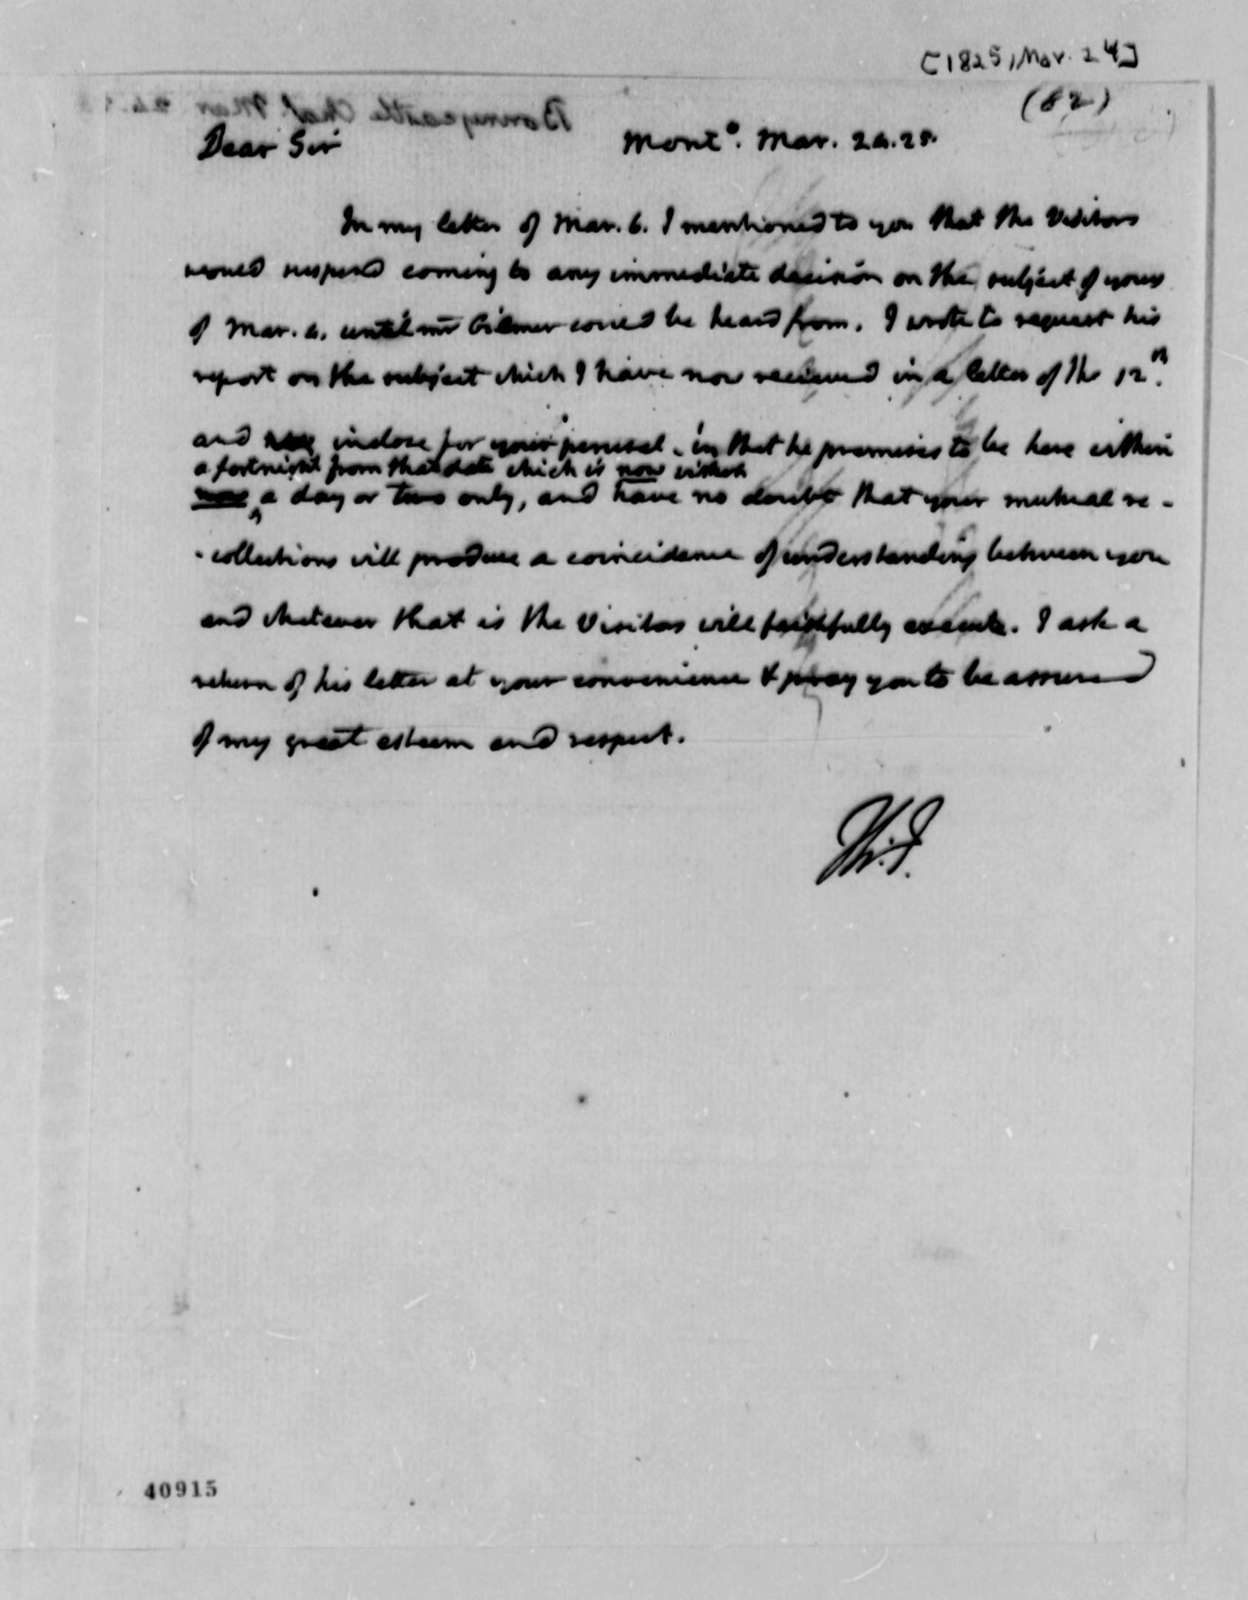 Thomas Jefferson to Charles Bonnycastle, March 24, 1825